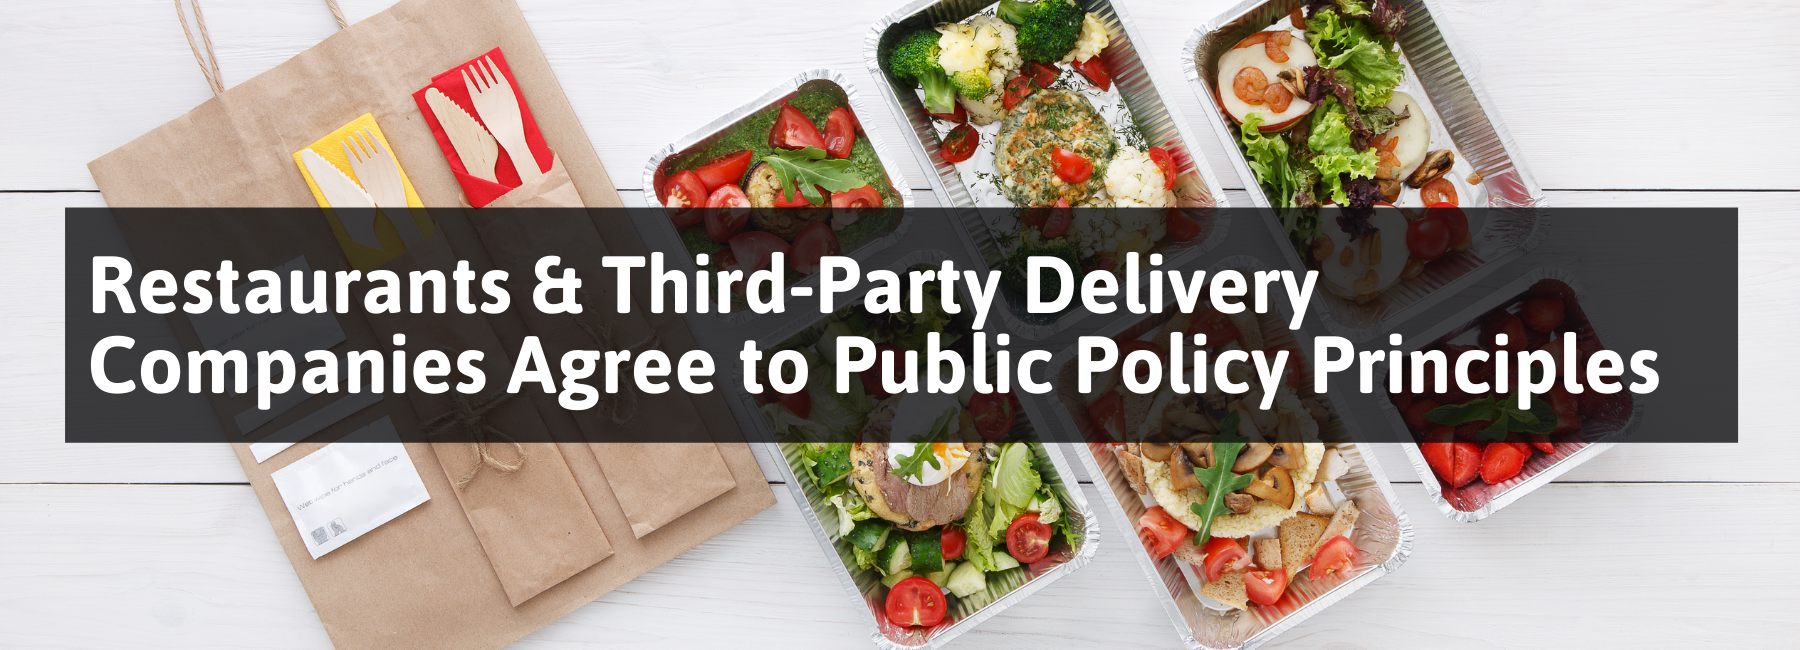 Restaurants and Third-Party Delivery Companies Agree to Public Policy Principles 1